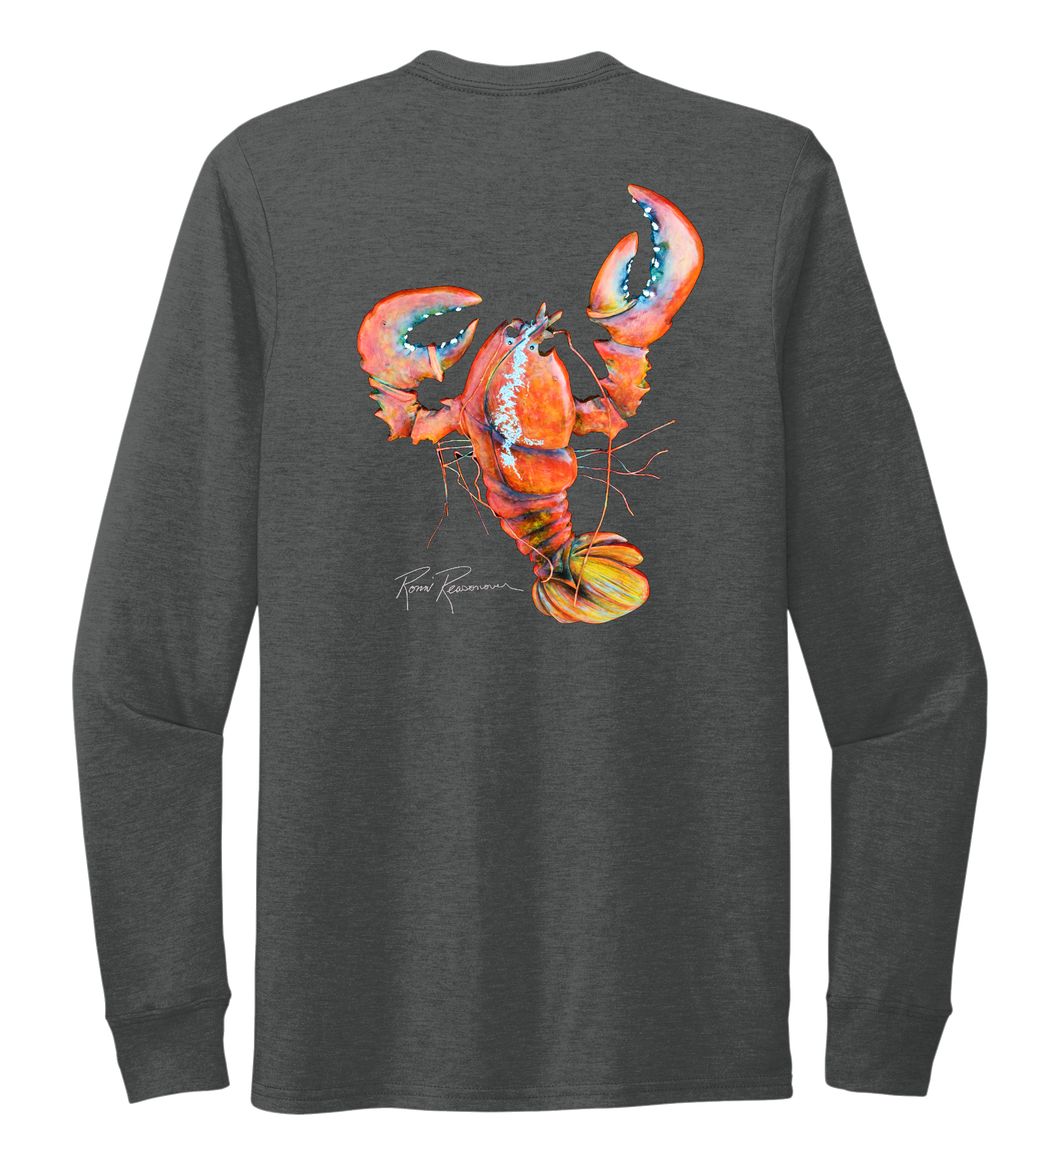 Ronnie Reasonover, The Lobster, Crew Neck Long Sleeve T-Shirt in Slate Black